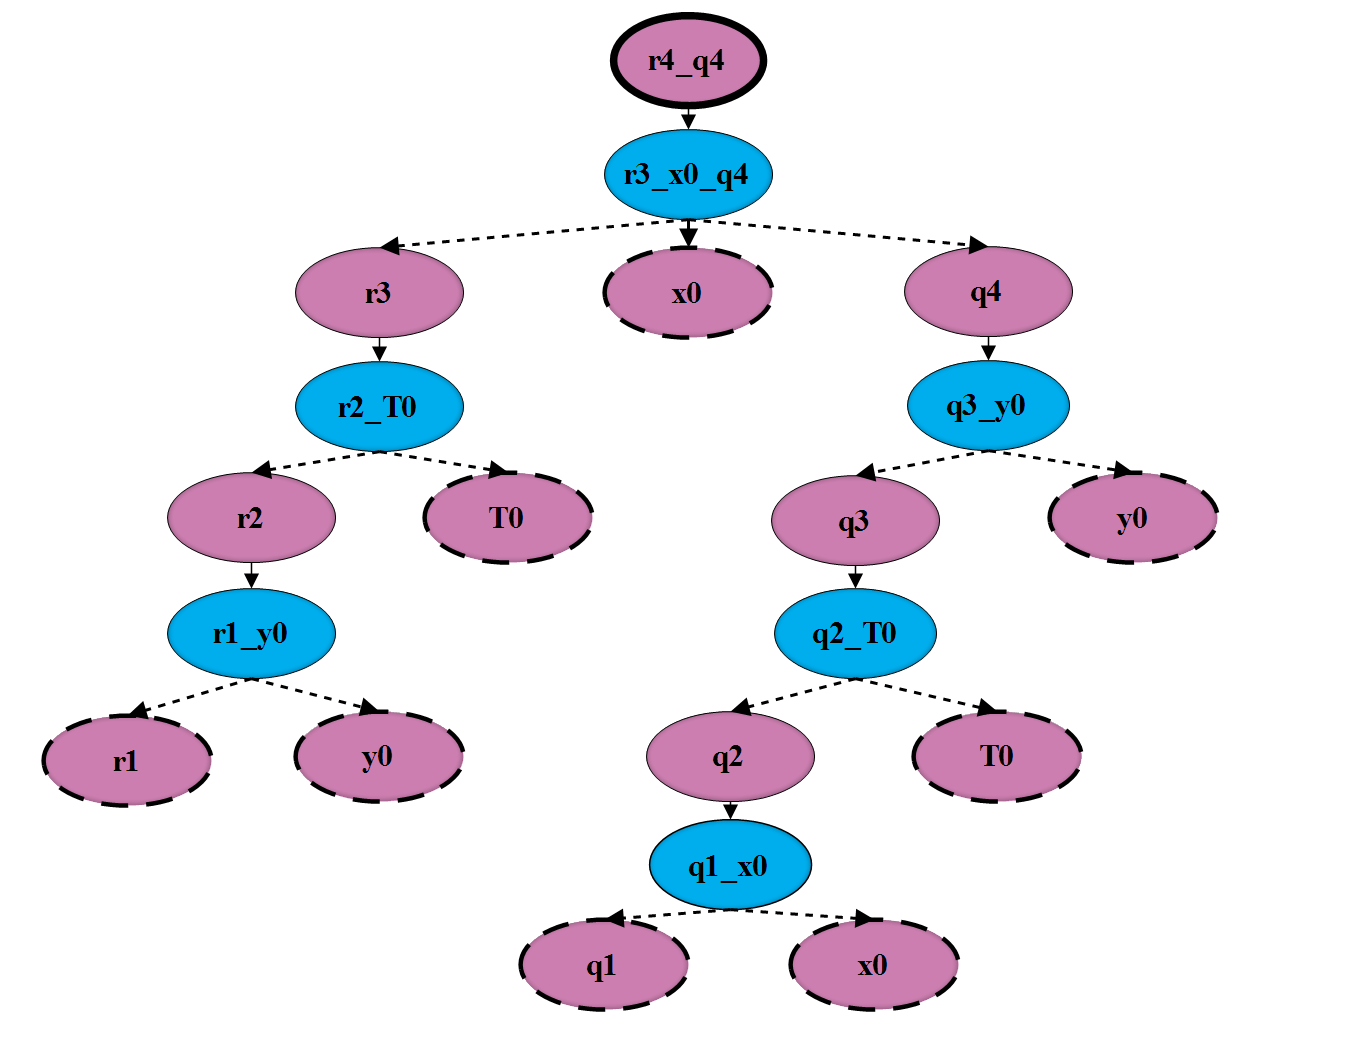 Figure 1. Backward run of GRB configuration q4r4 (q = 4 r = 4) is included in the domain since it represents the state of the system when two processes are in a critical section.